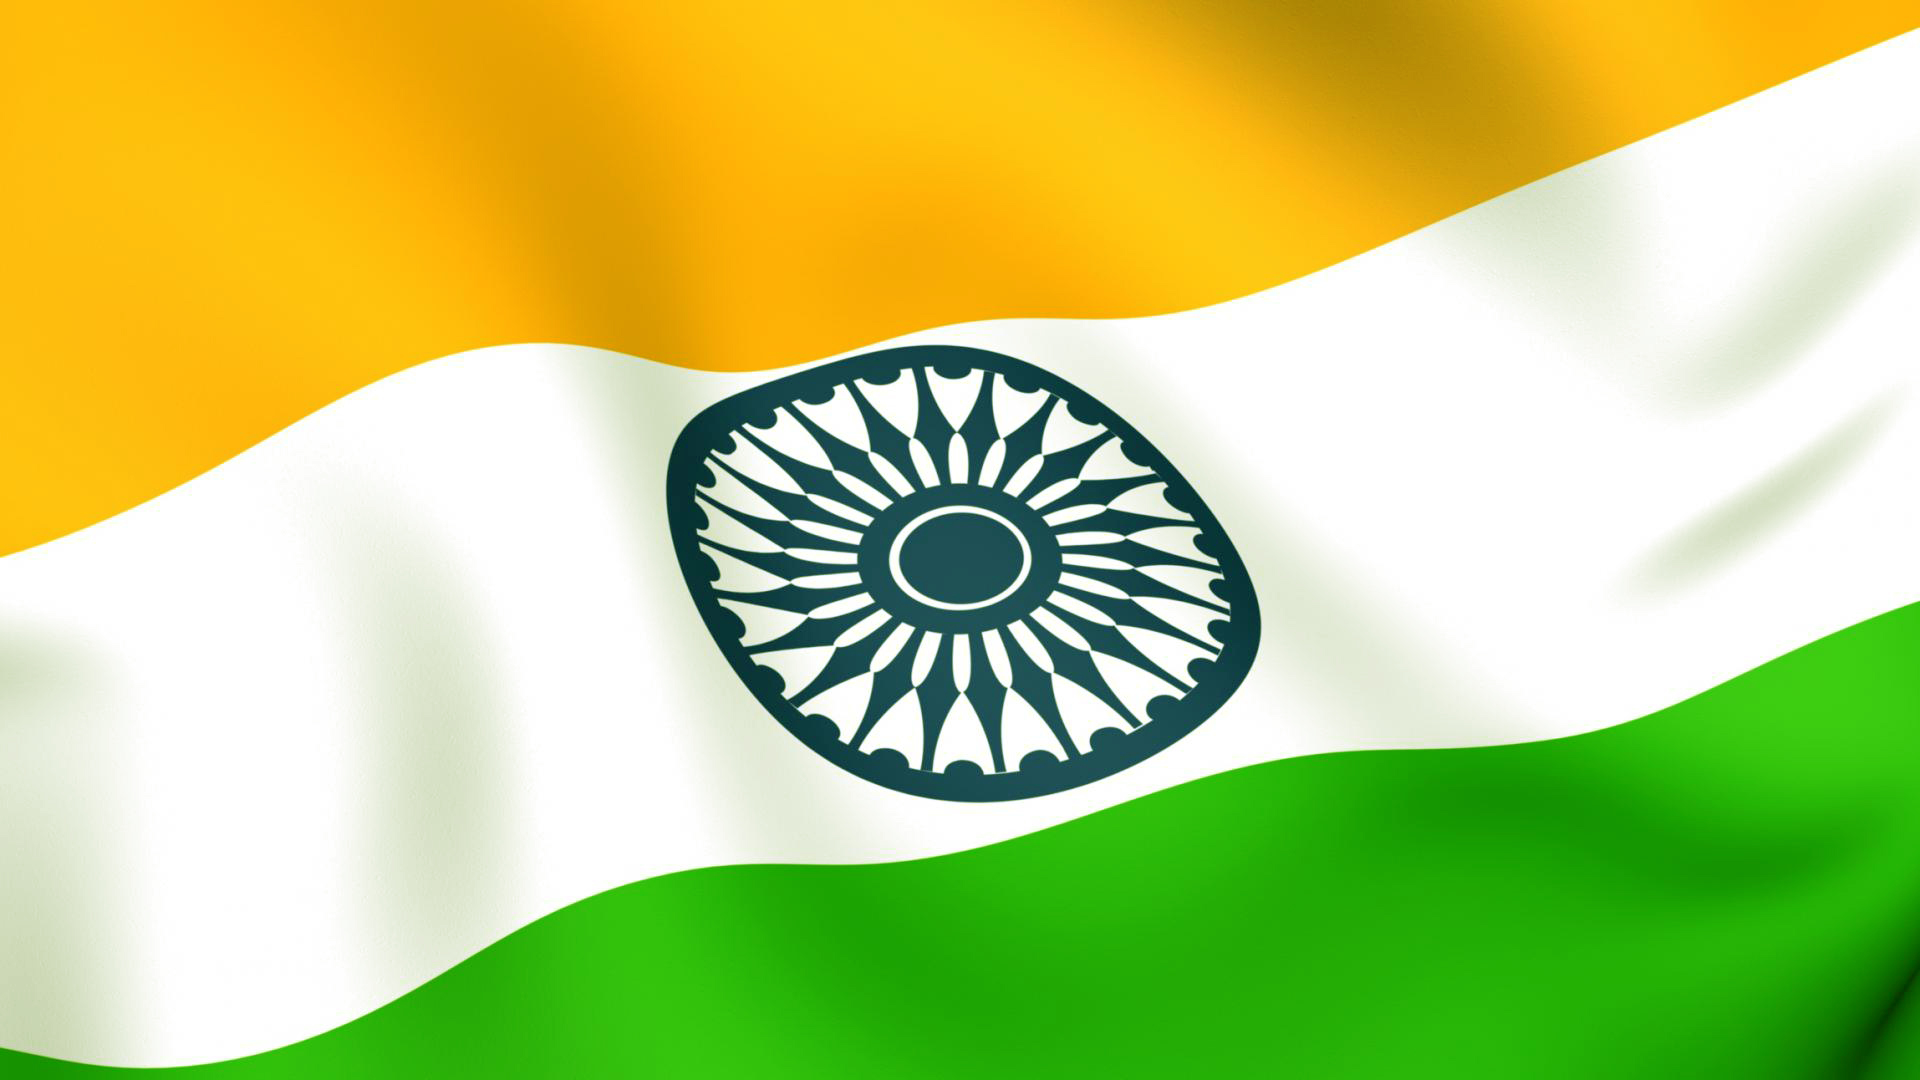 Indian Flag Images HD Wallpaper